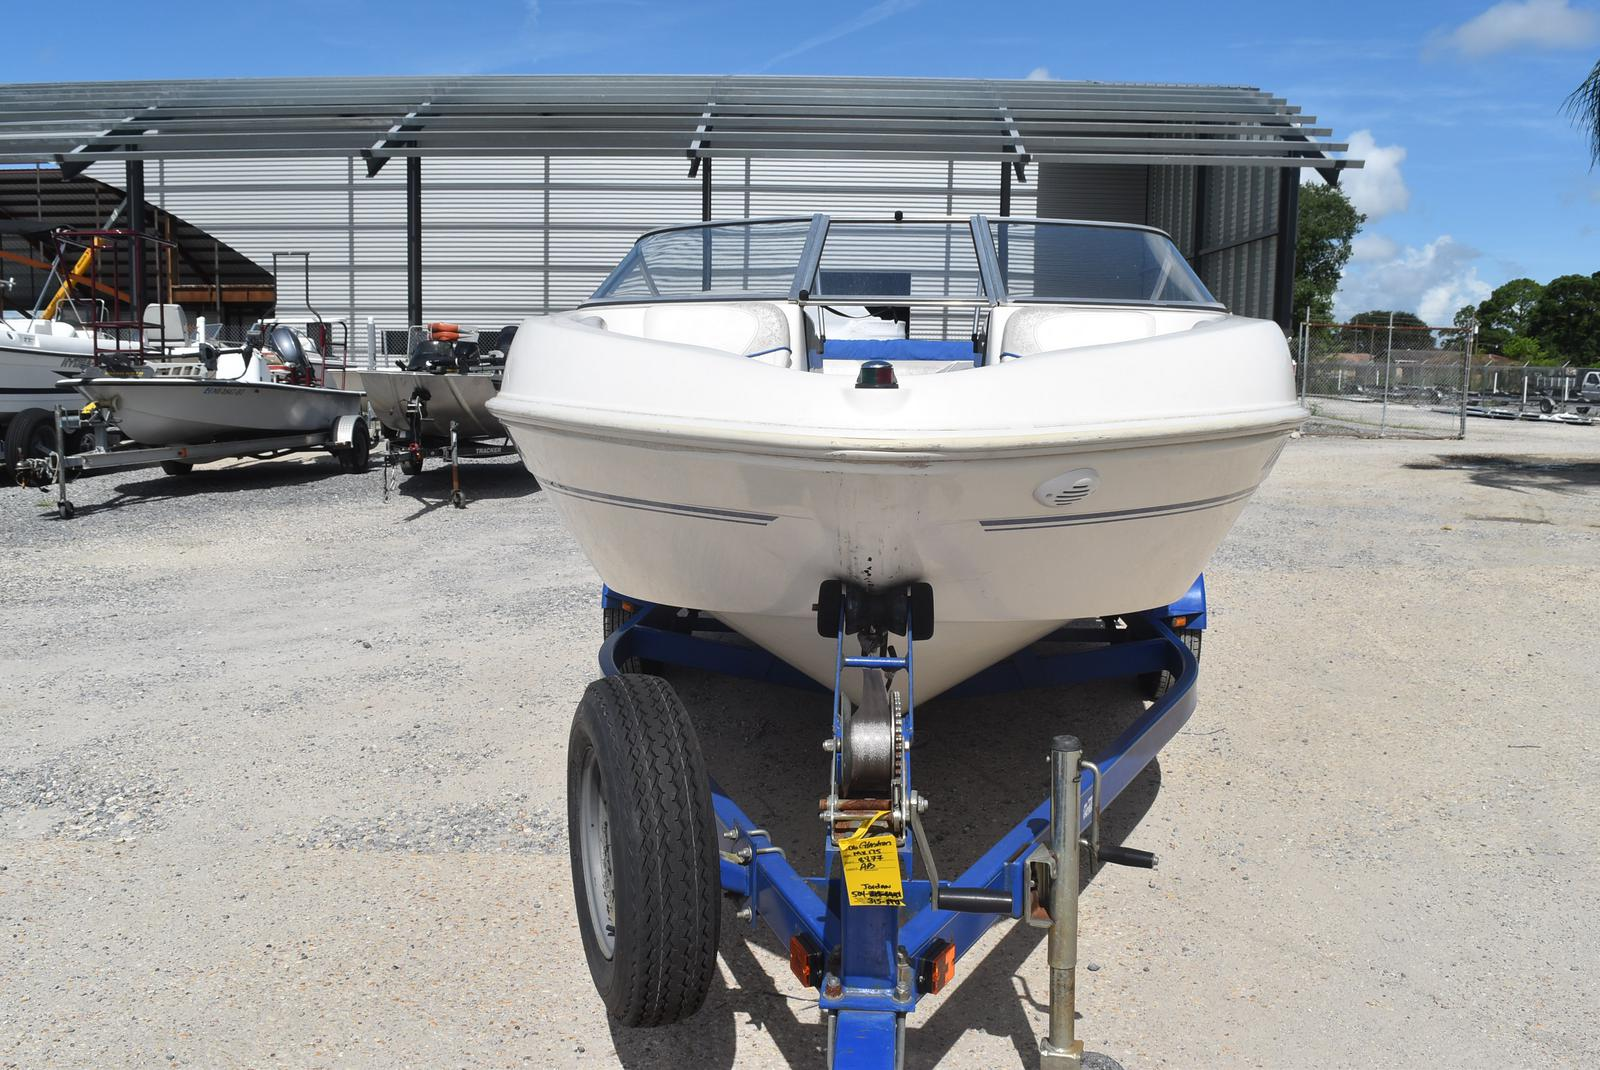 2006 Glastron boat for sale, model of the boat is MX 175 & Image # 20 of 21